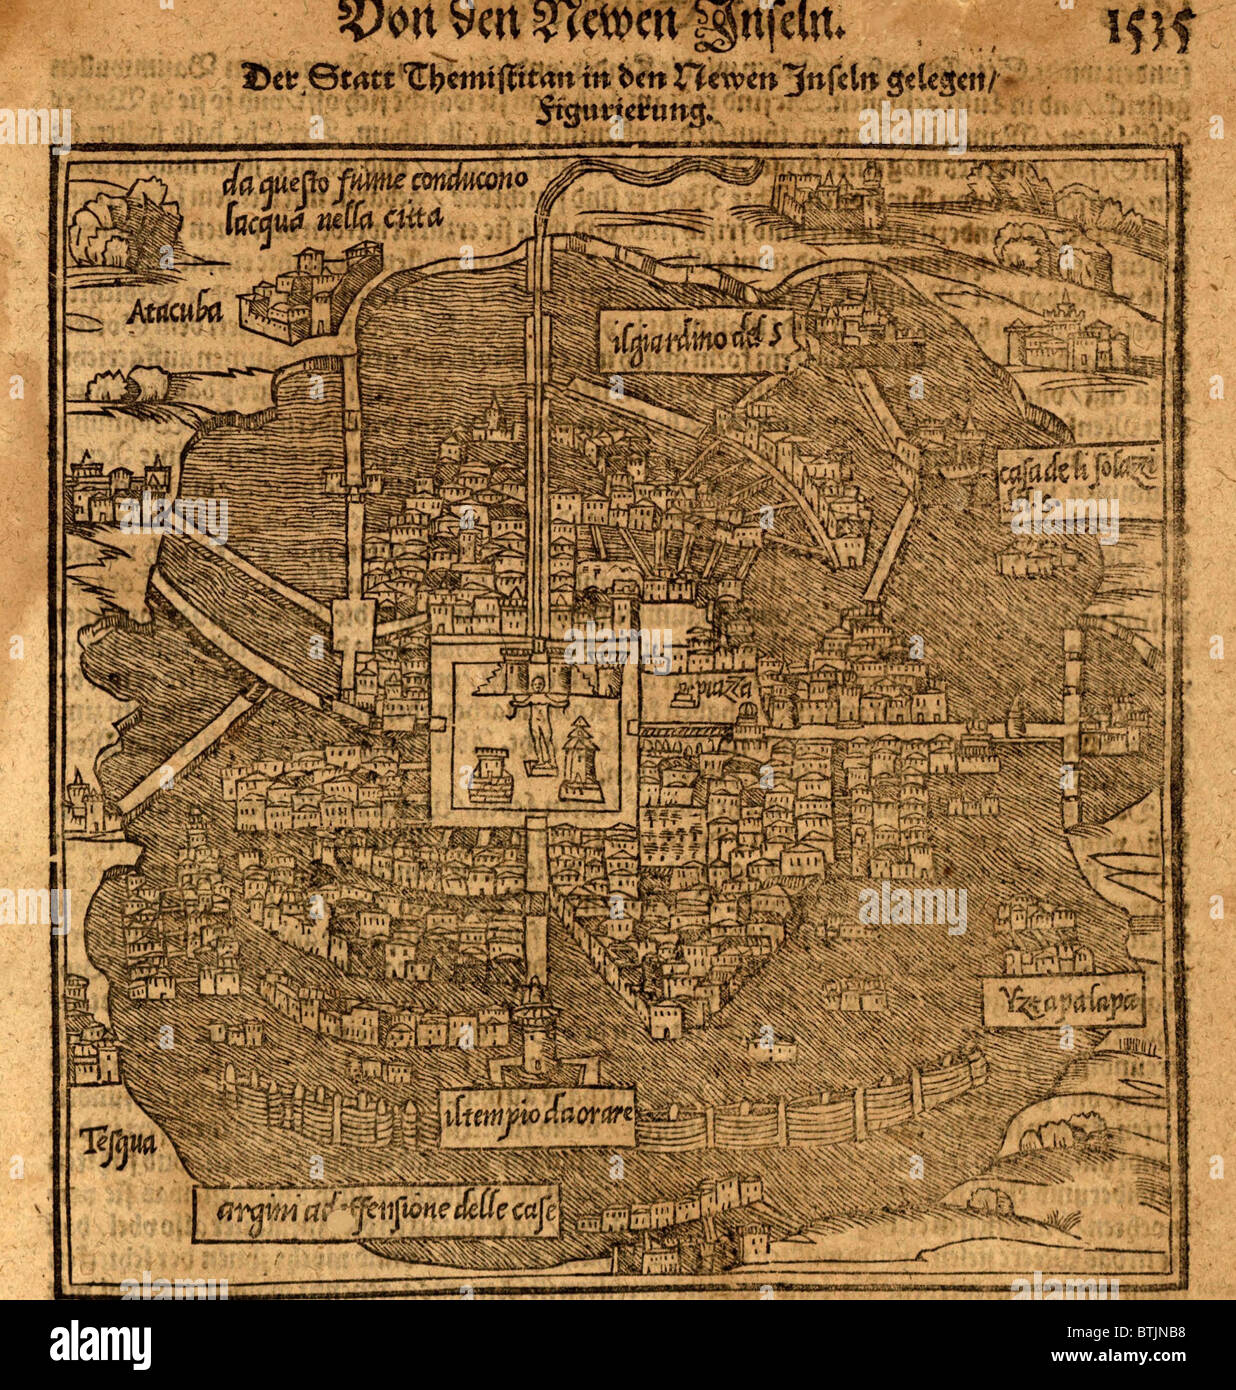 Aztec Capital Tenochtitlan Now Mexico City From A 1597 Map By – Aztec Mexico Map